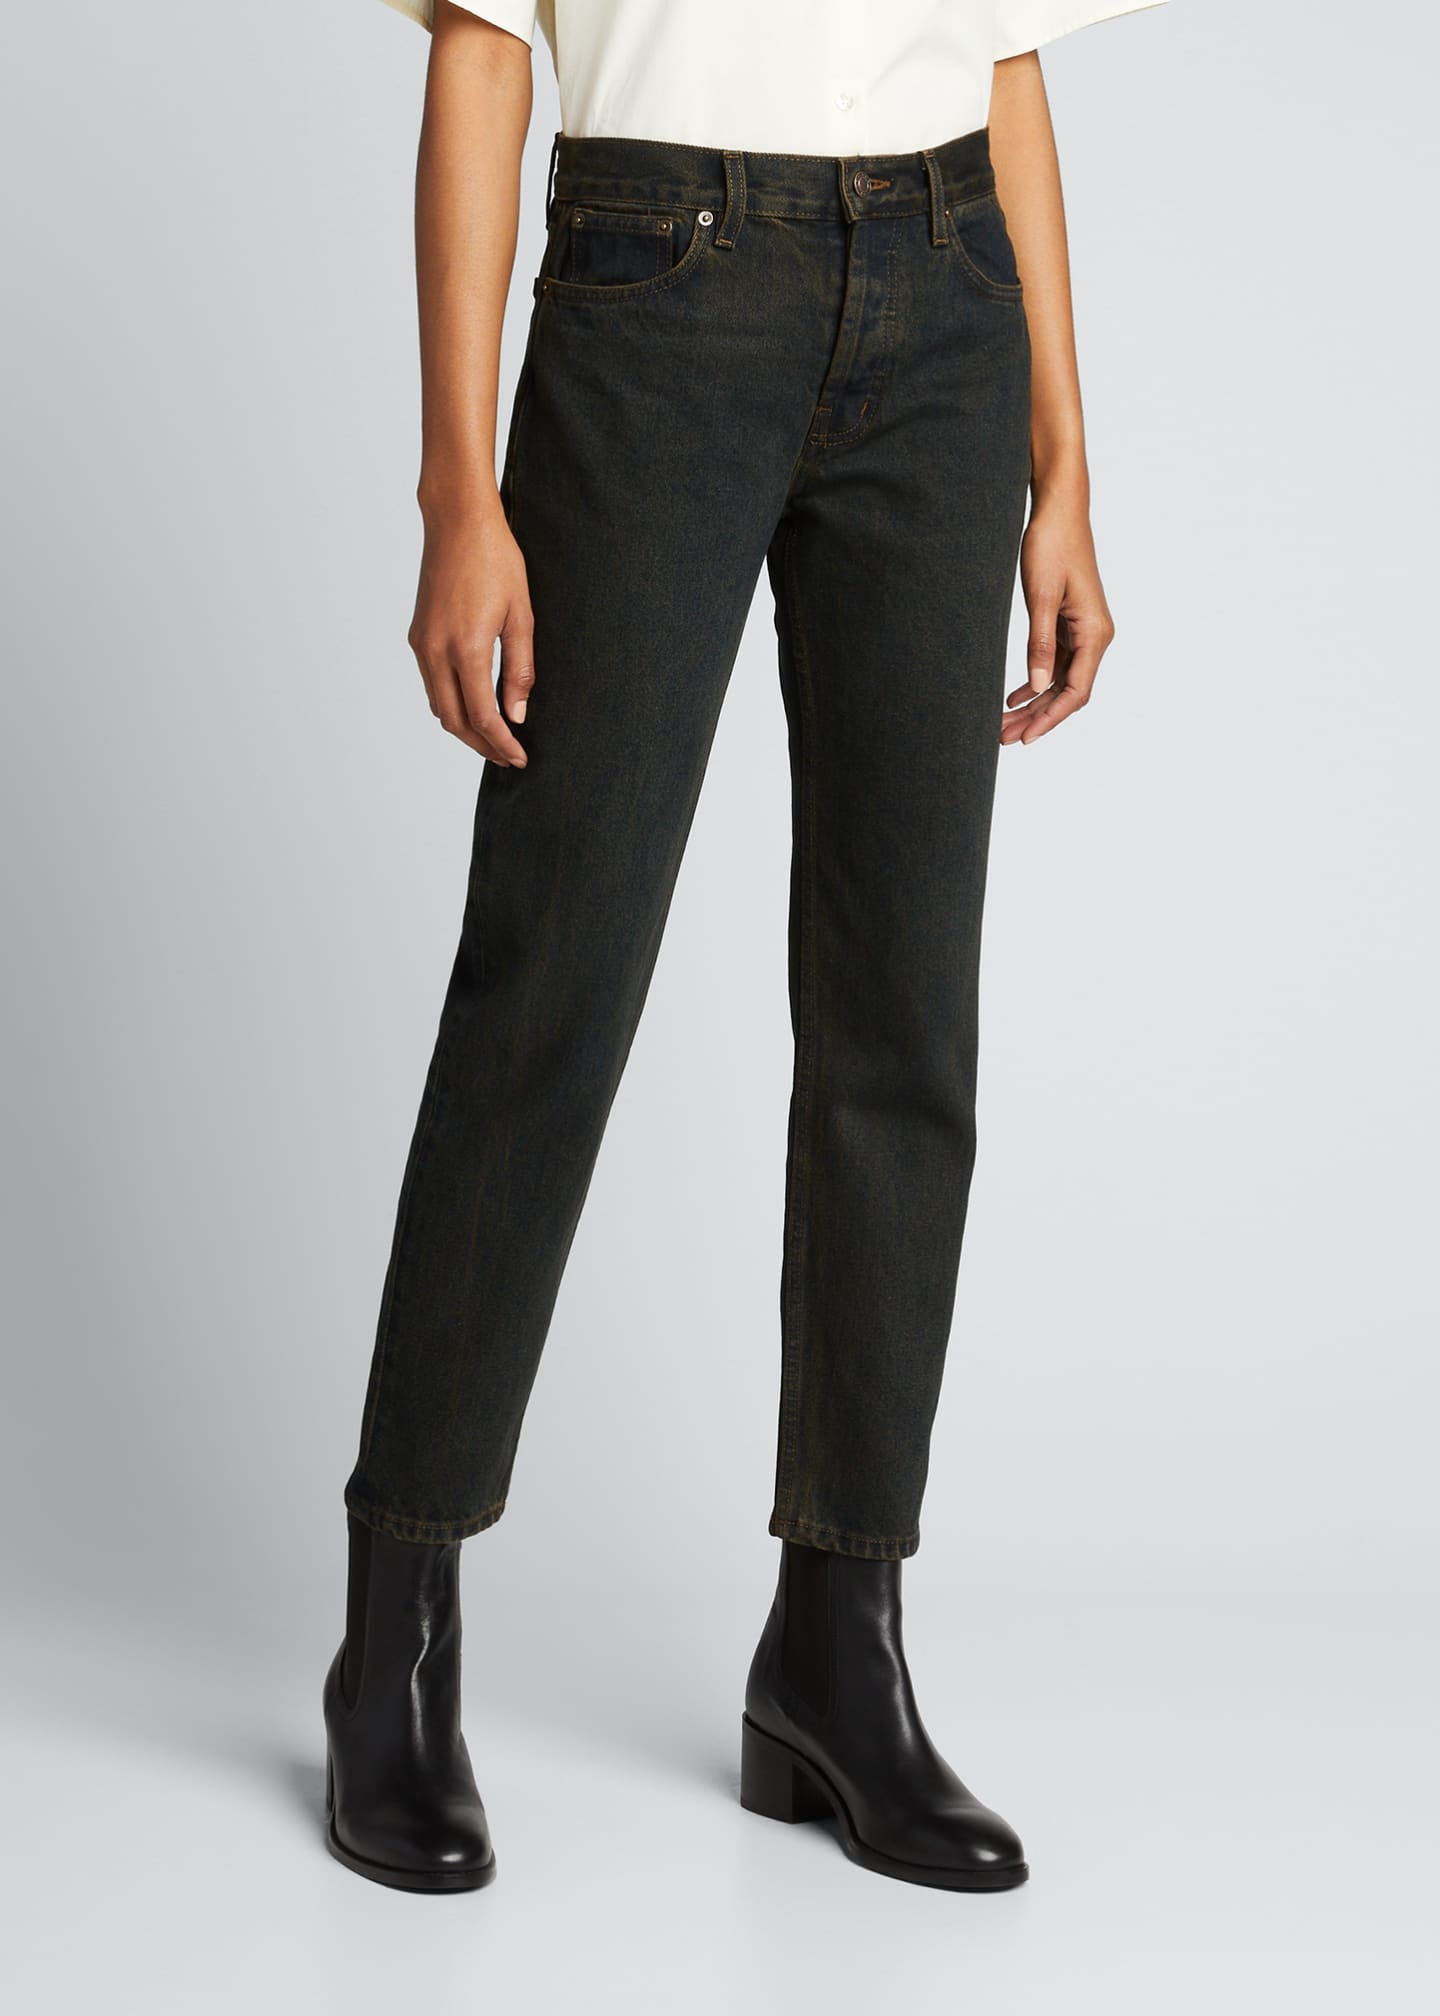 Image 1 of 5: The Rae Original Cropped Jeans